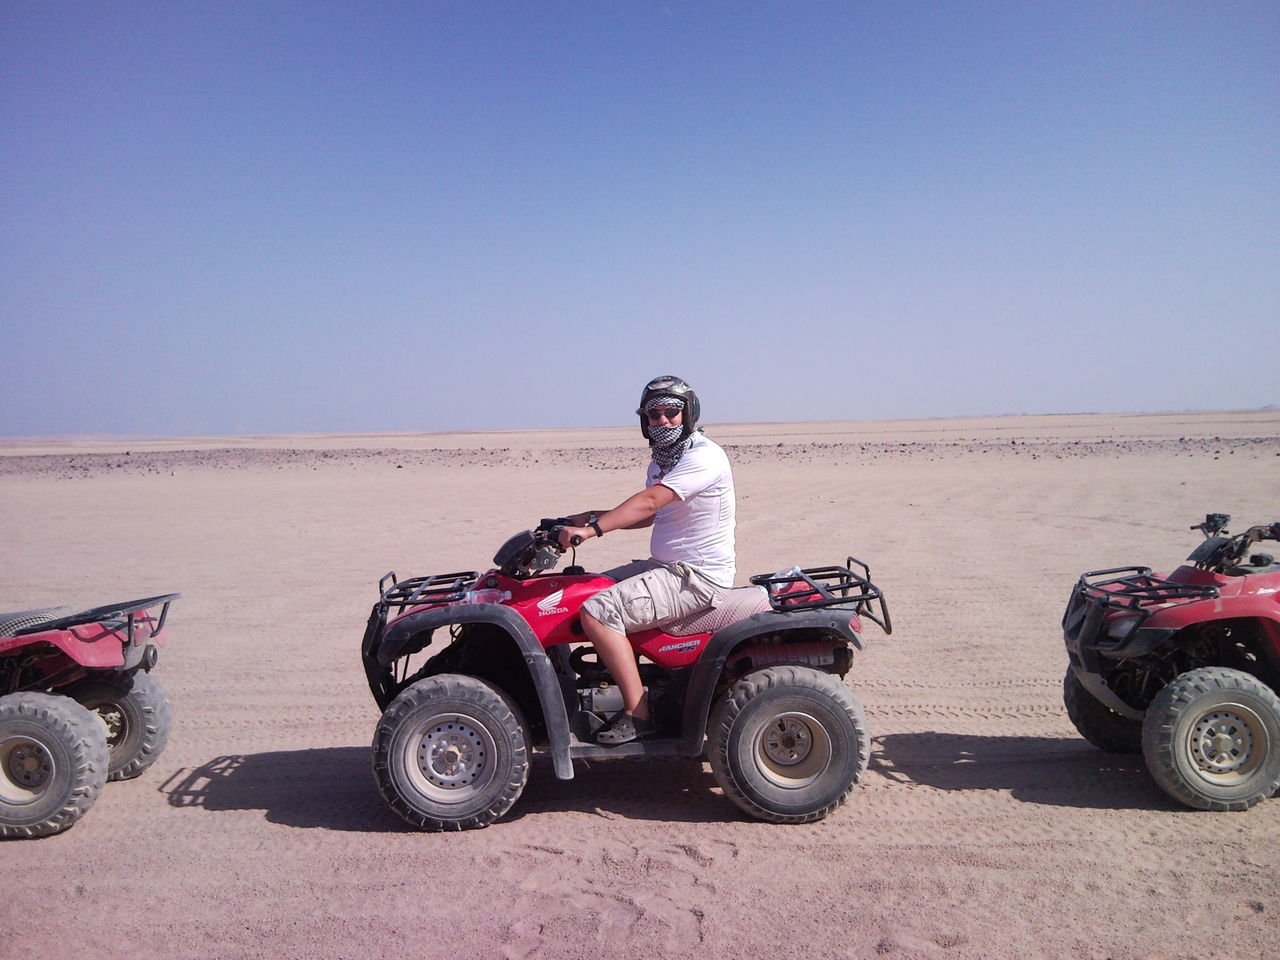 Adventure Auto Racing Child Children Only Competition Day Desert Deserts Around The World Driving Egypt Headwear Hurghada Motorcycle Motorcycle Racing Motorsport One Person Outdoors People Riding Sand Sports Race Sports Track Tire